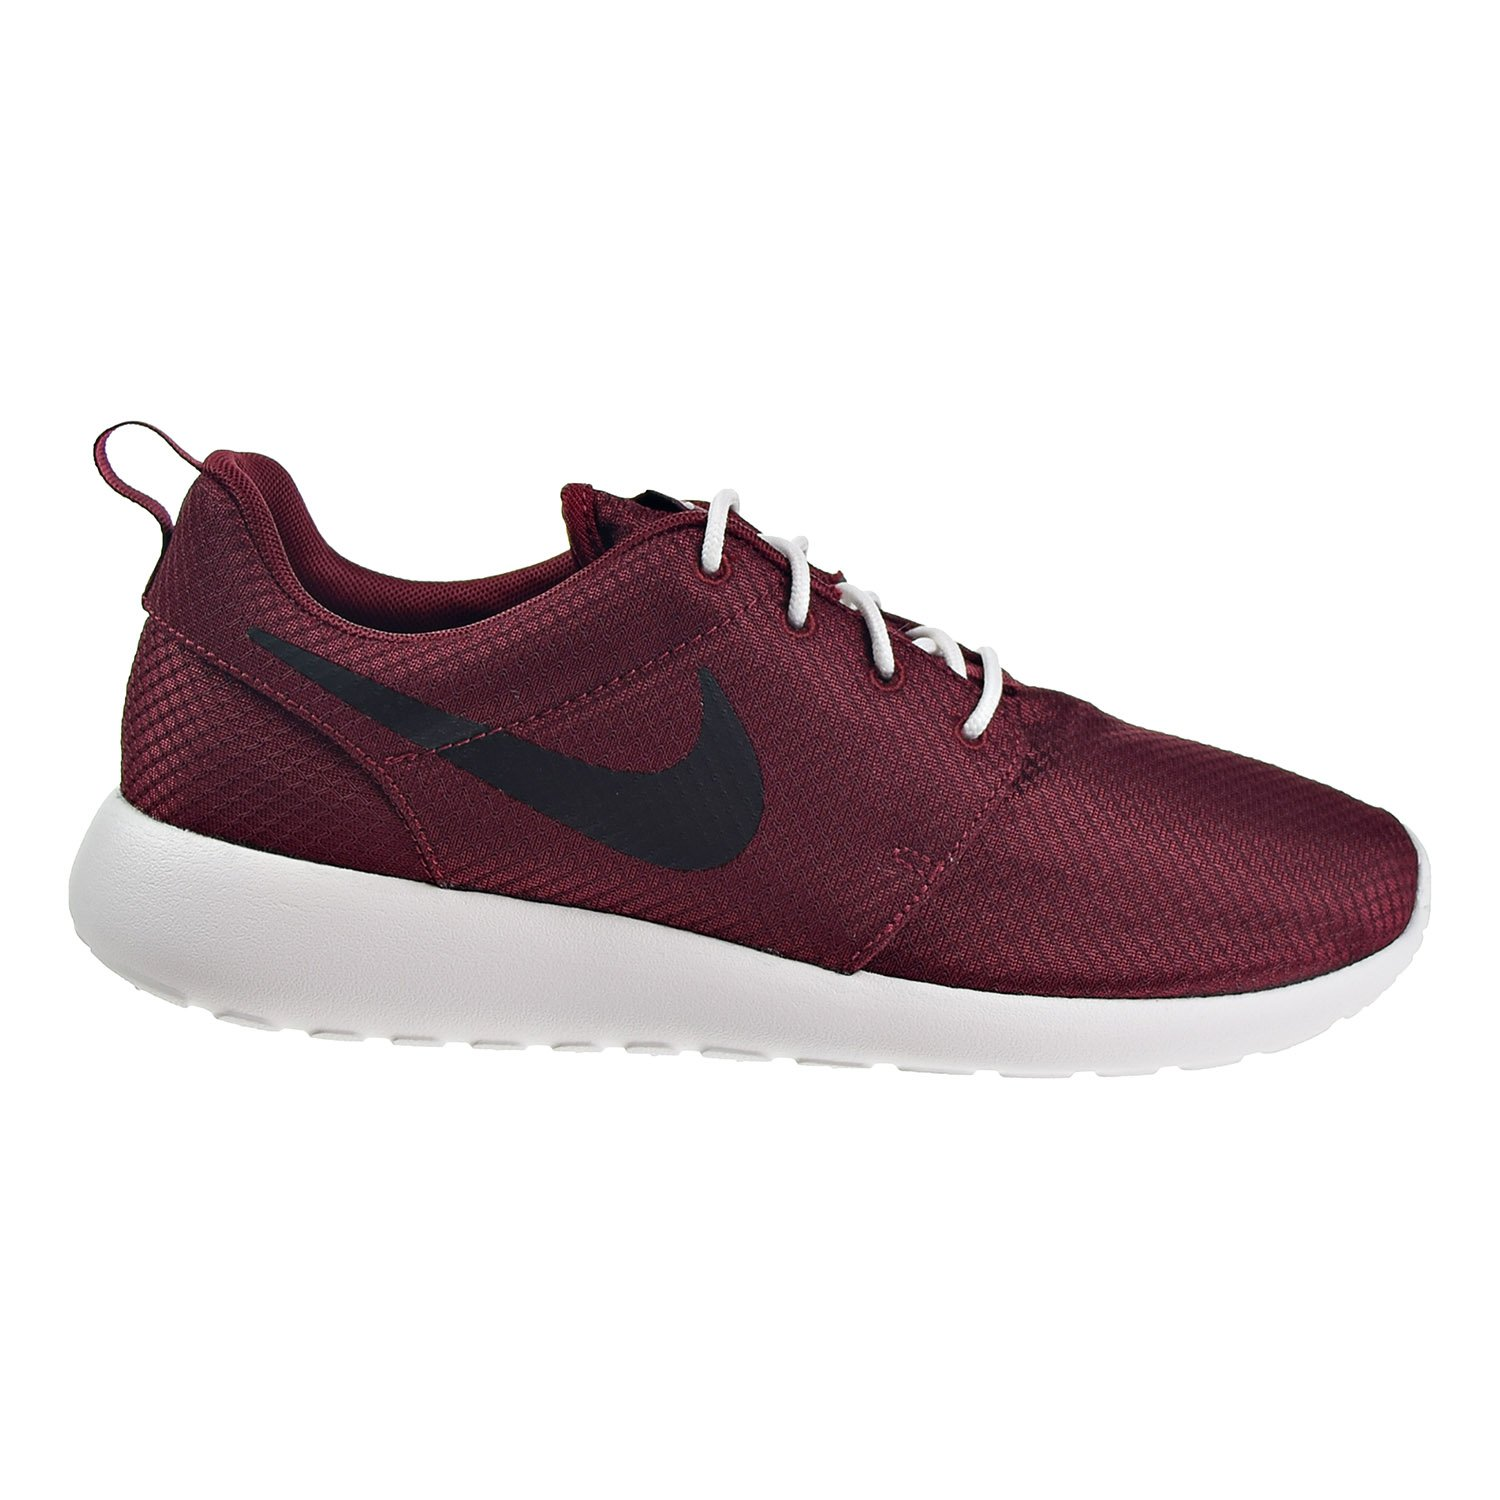 online retailer c53bb 92e9d Nike Roshe One Mens Shoes Team Red Black Summit White 511881-607 (9 B(M) US)   Buy Online at Low Prices in India - Amazon.in